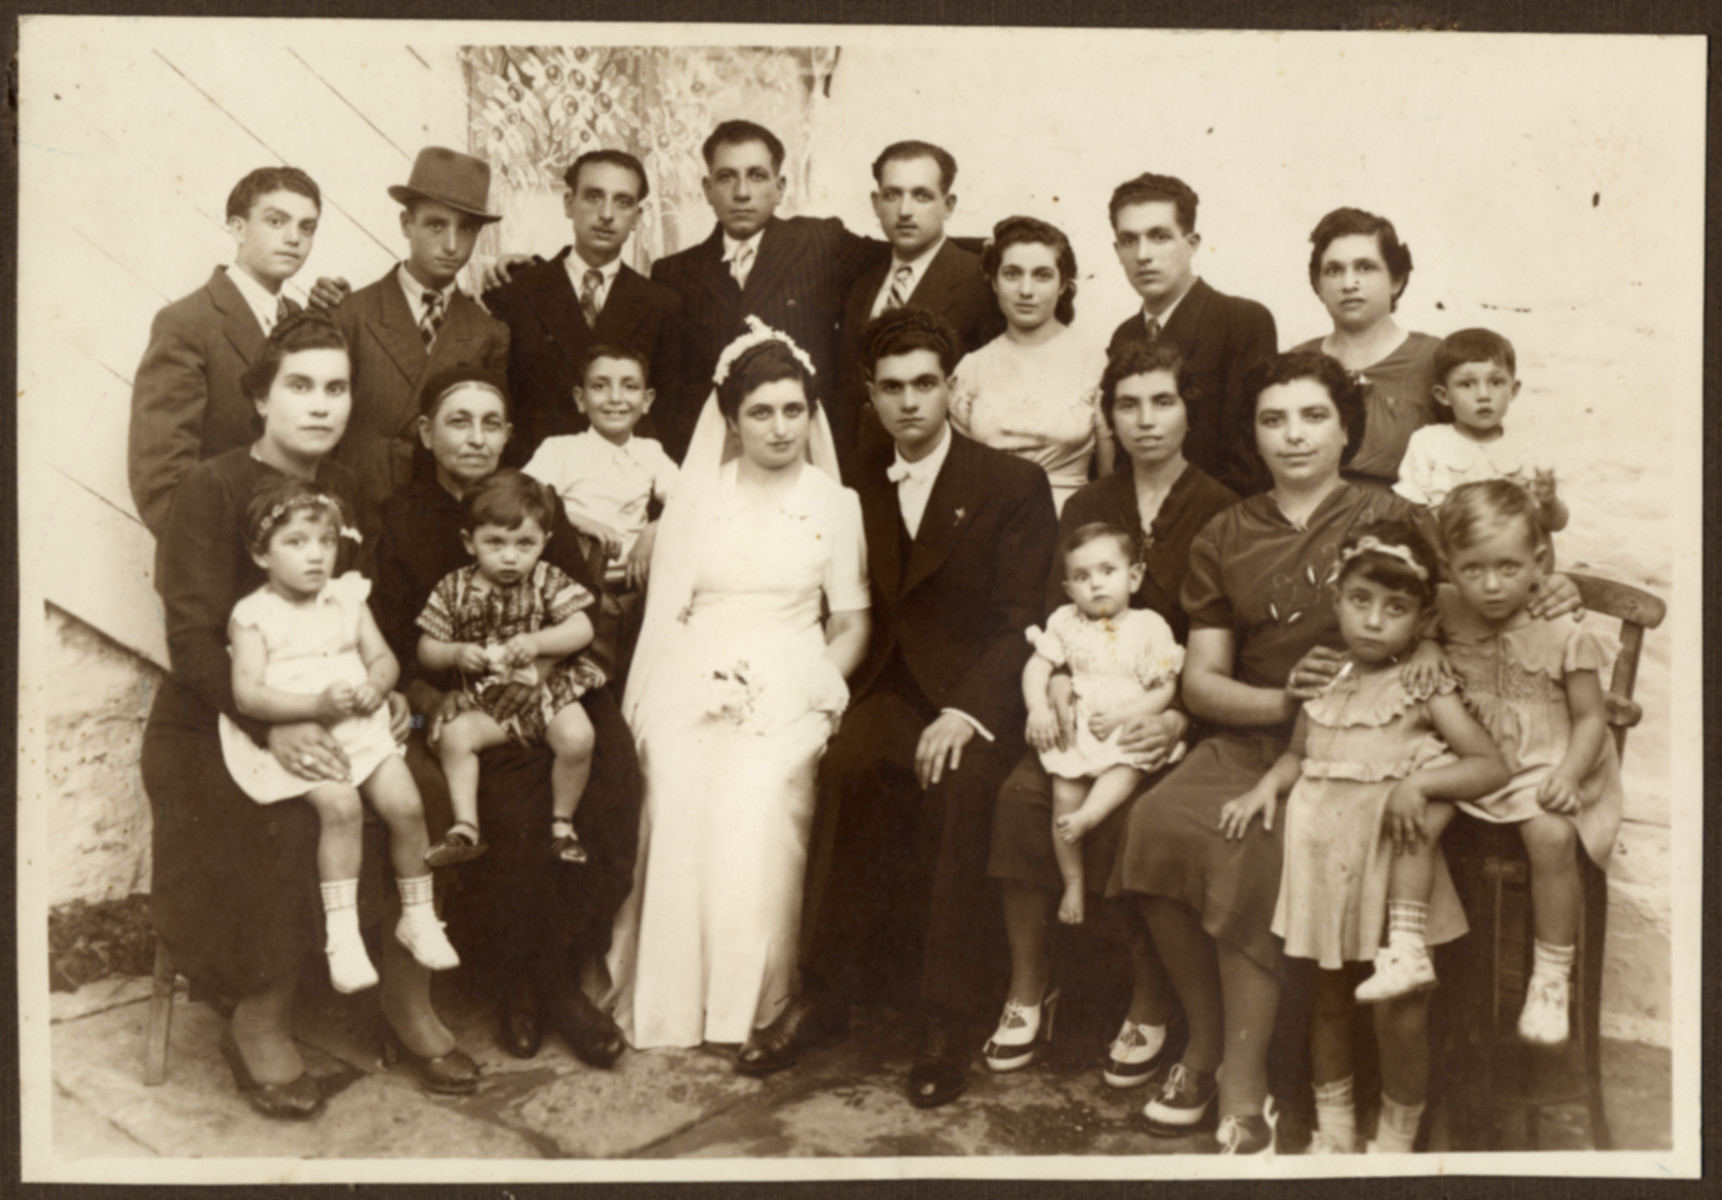 Wedding portrait of an extended Jewish family in Greece.  Pictured is the Vitalis family.  Everyone perished except for Rosa Vitalli Ackou and her five children.